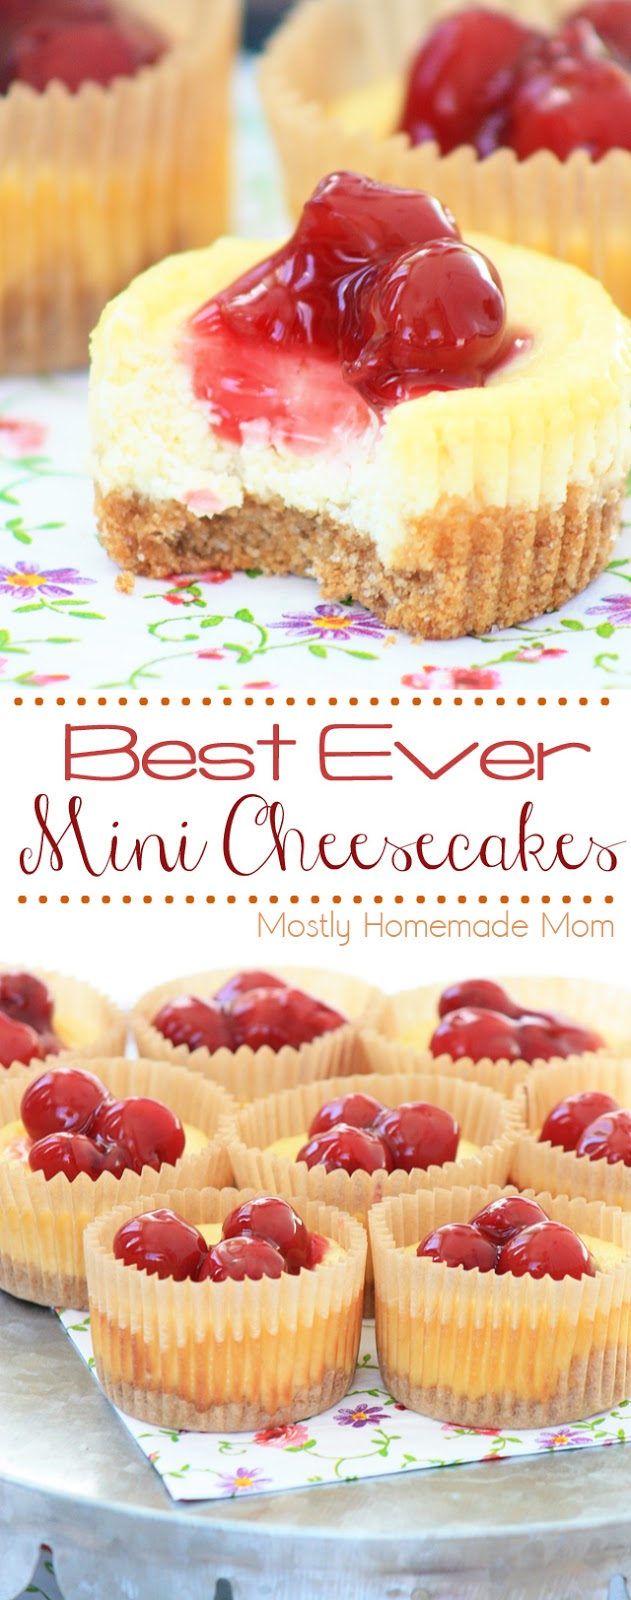 Best Ever Mini Cheesecakes - VIDEO post | Mostly Homemade Mom